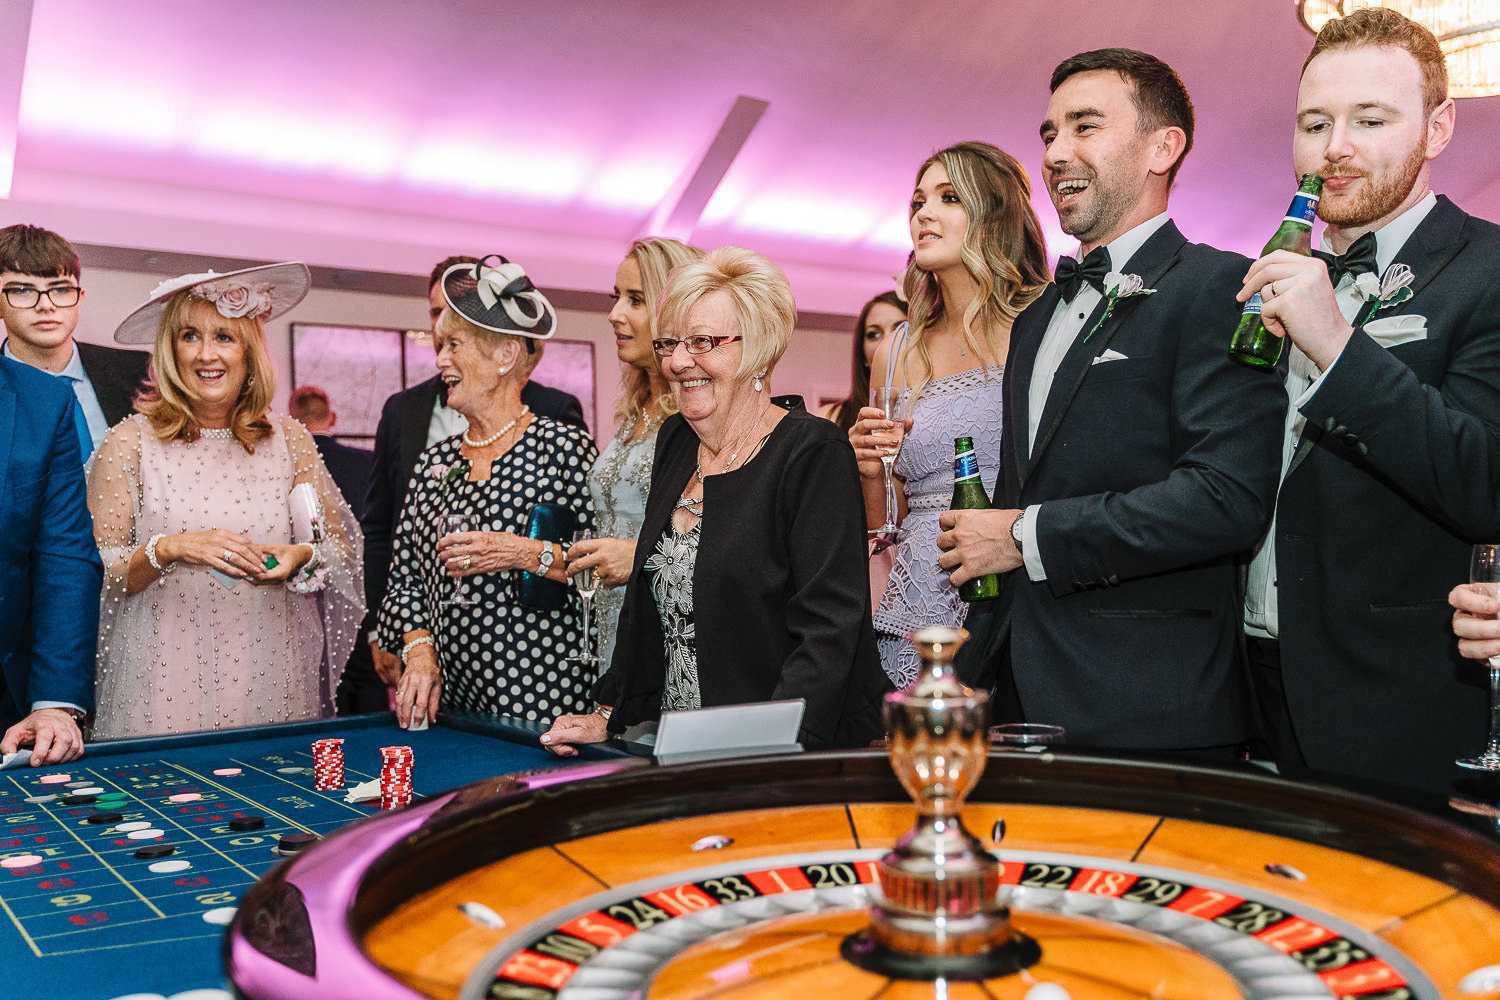 Guests at the roulette table